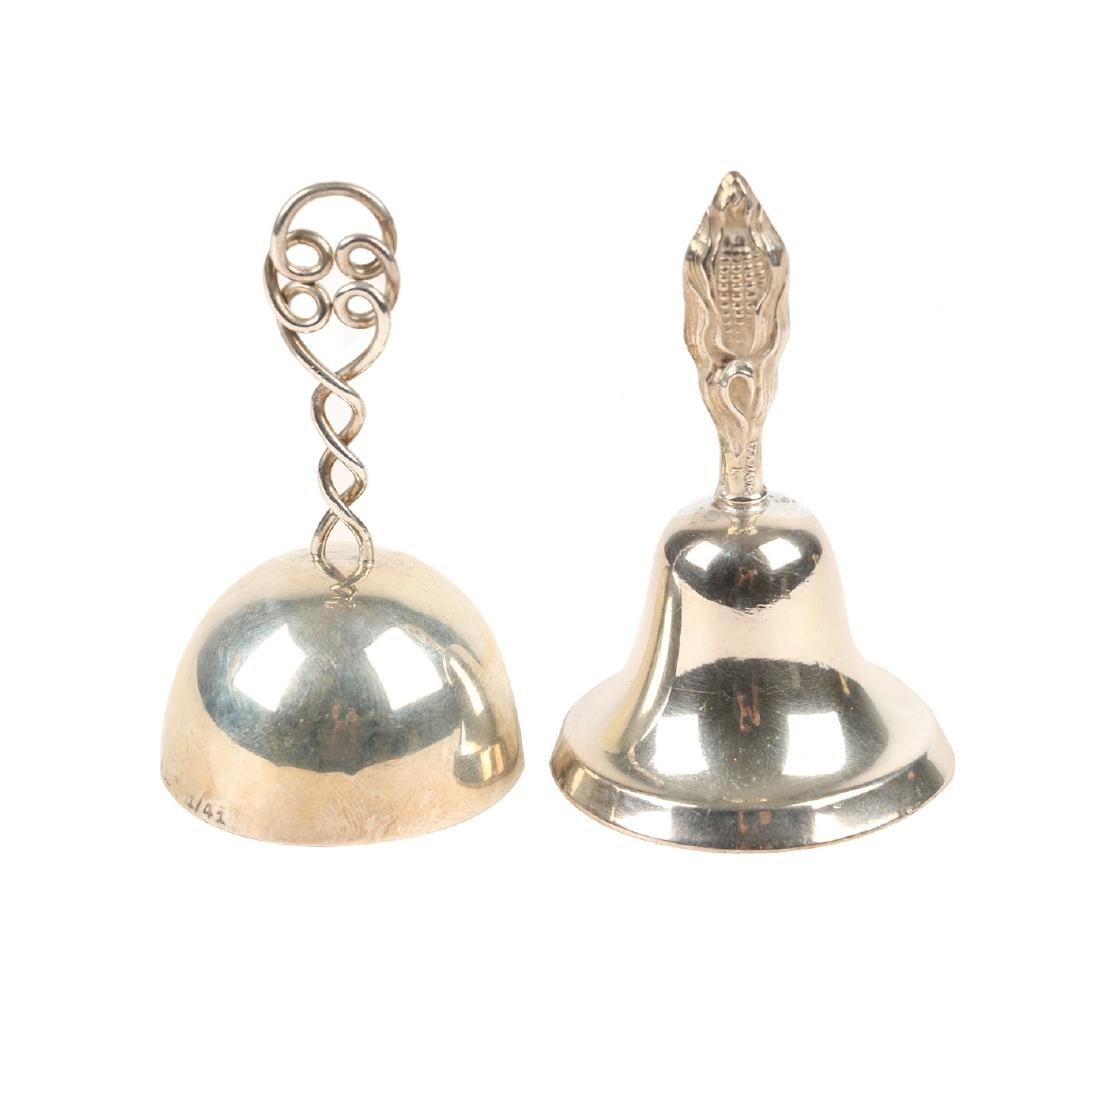 Birks Sterling Silver Call Bells